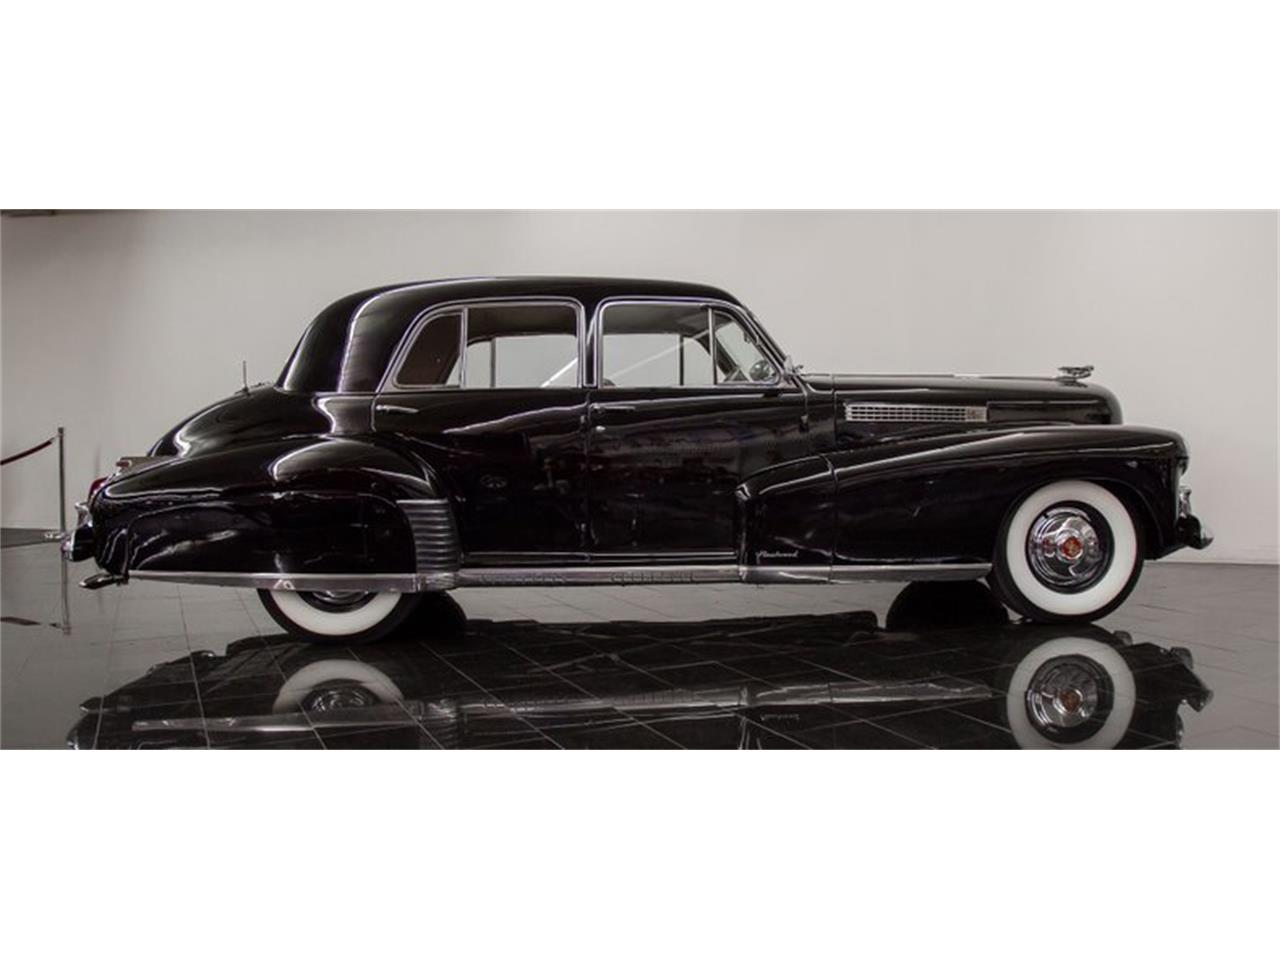 1941 Cadillac Fleetwood 60 Special Imperial Sedan (CC-1346231) for sale in St. Louis, Missouri